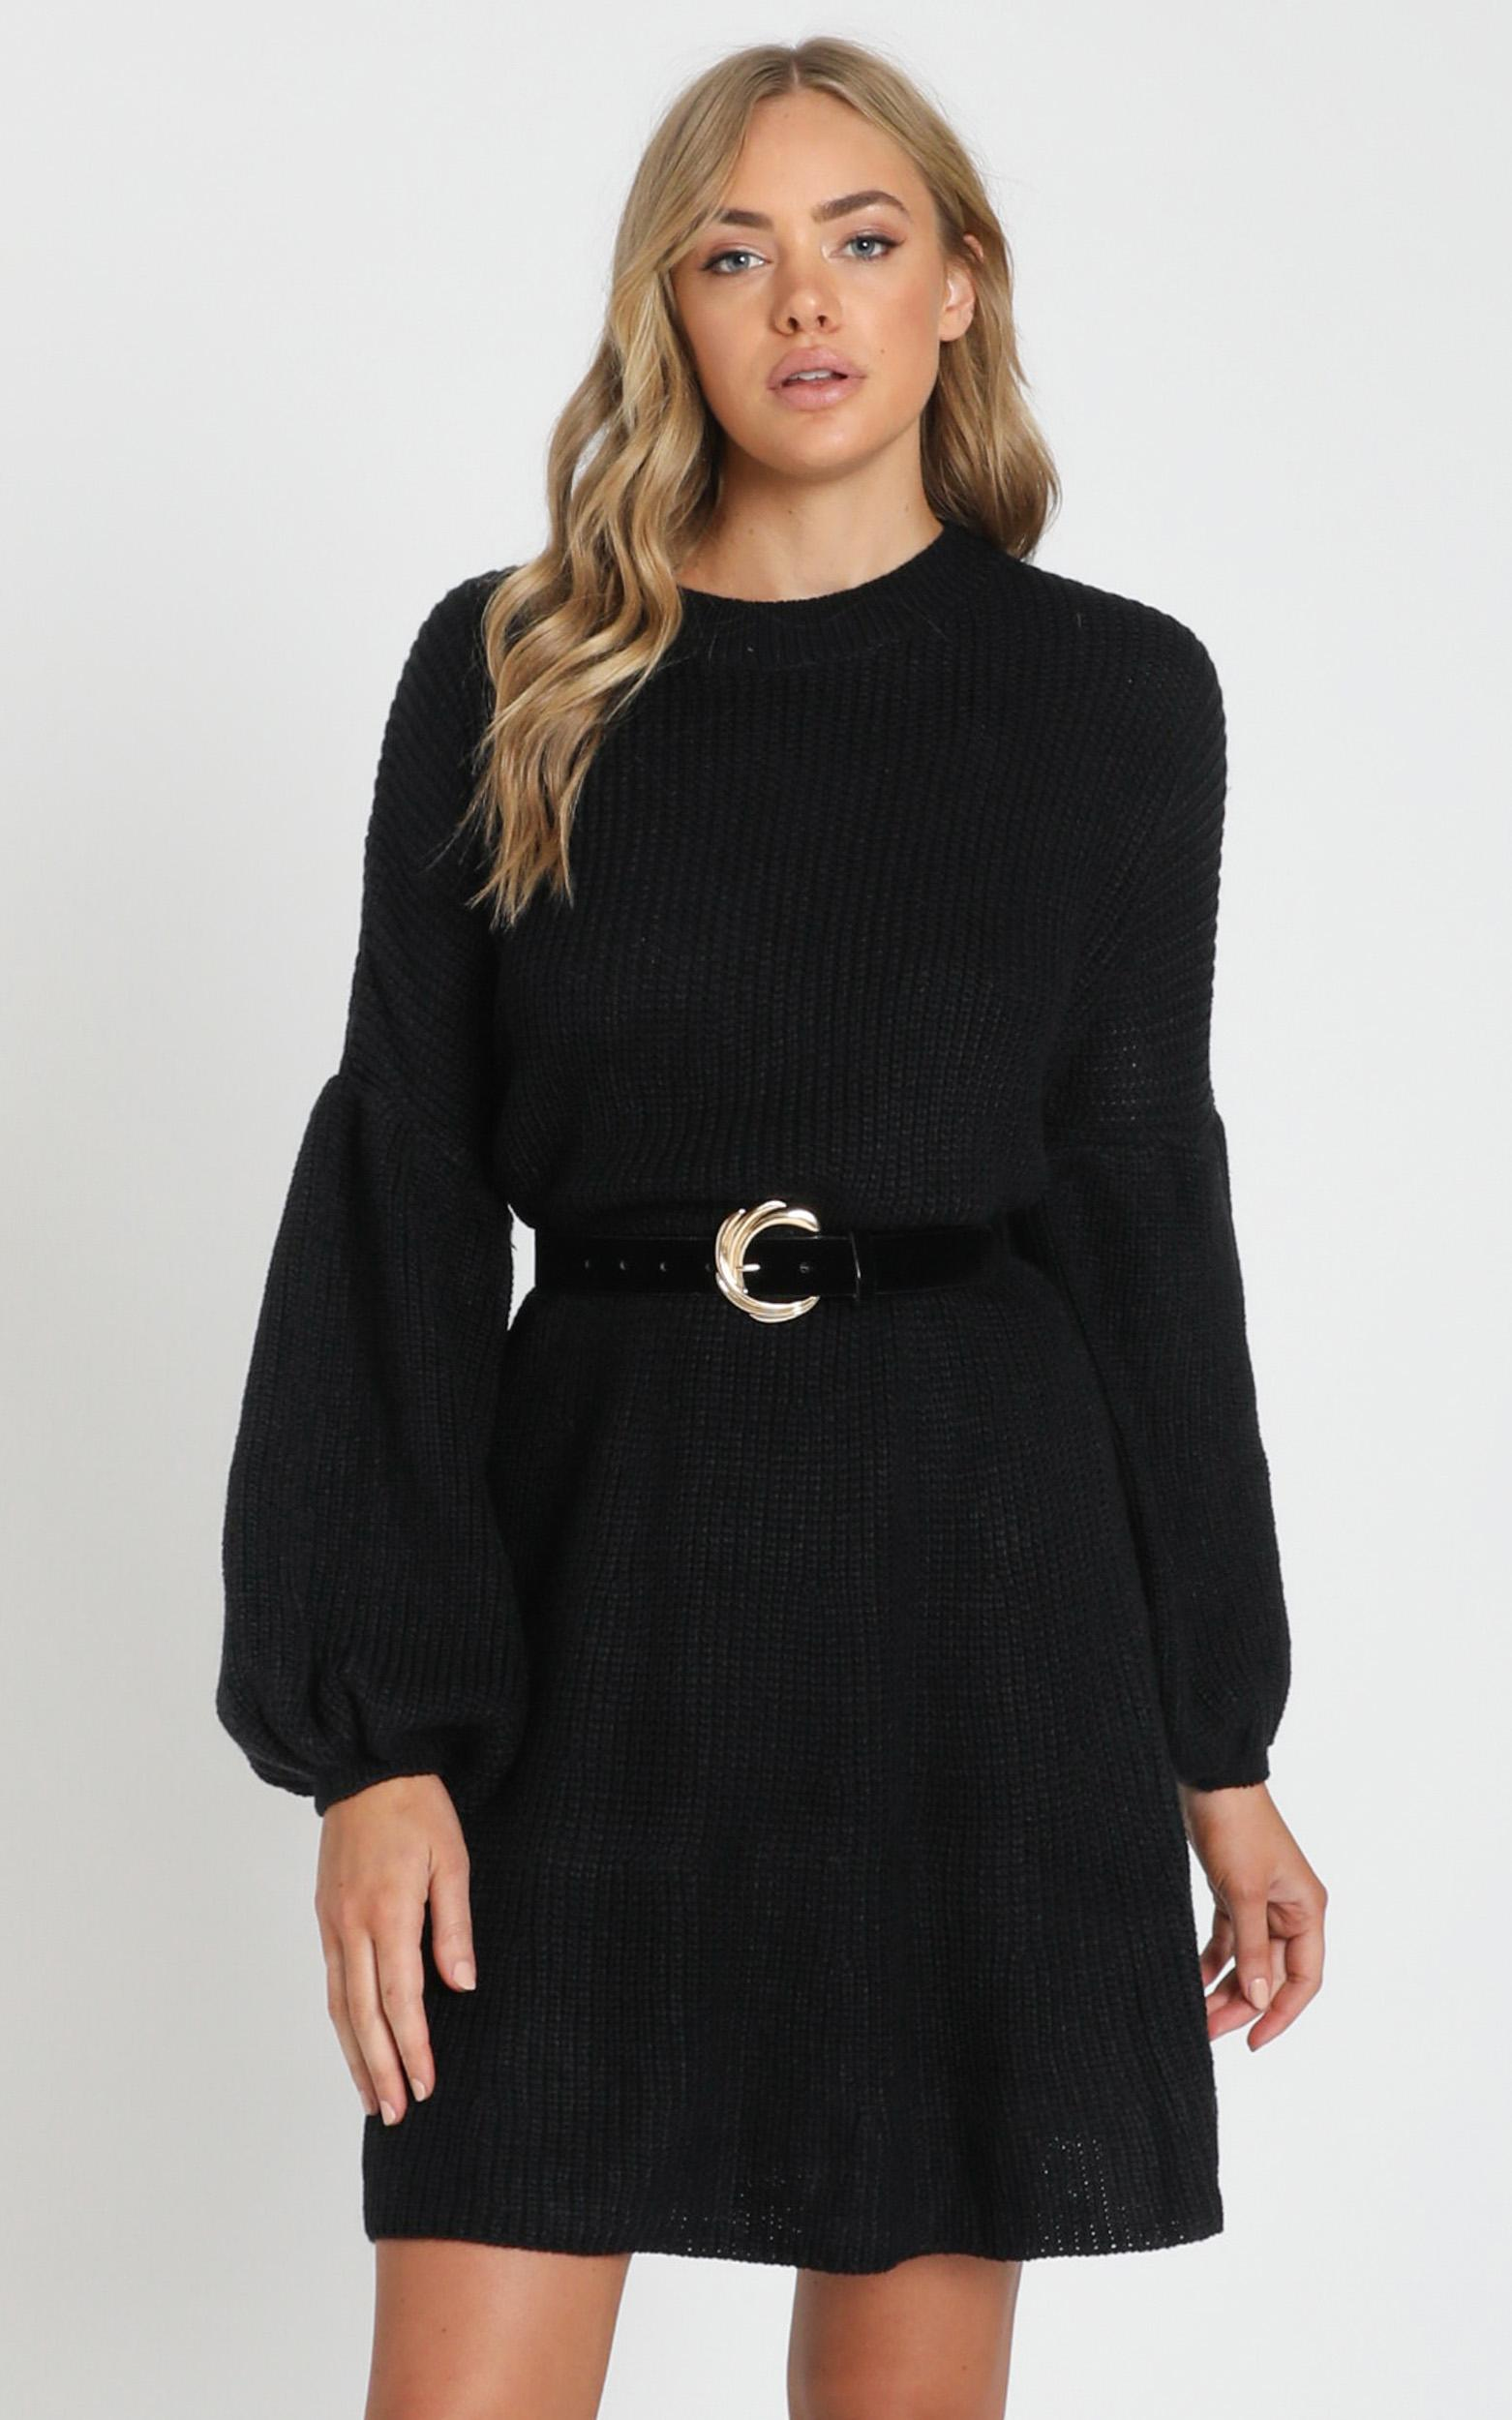 Fearless Now knit dress in black - 18 (XXXL), Black, hi-res image number null